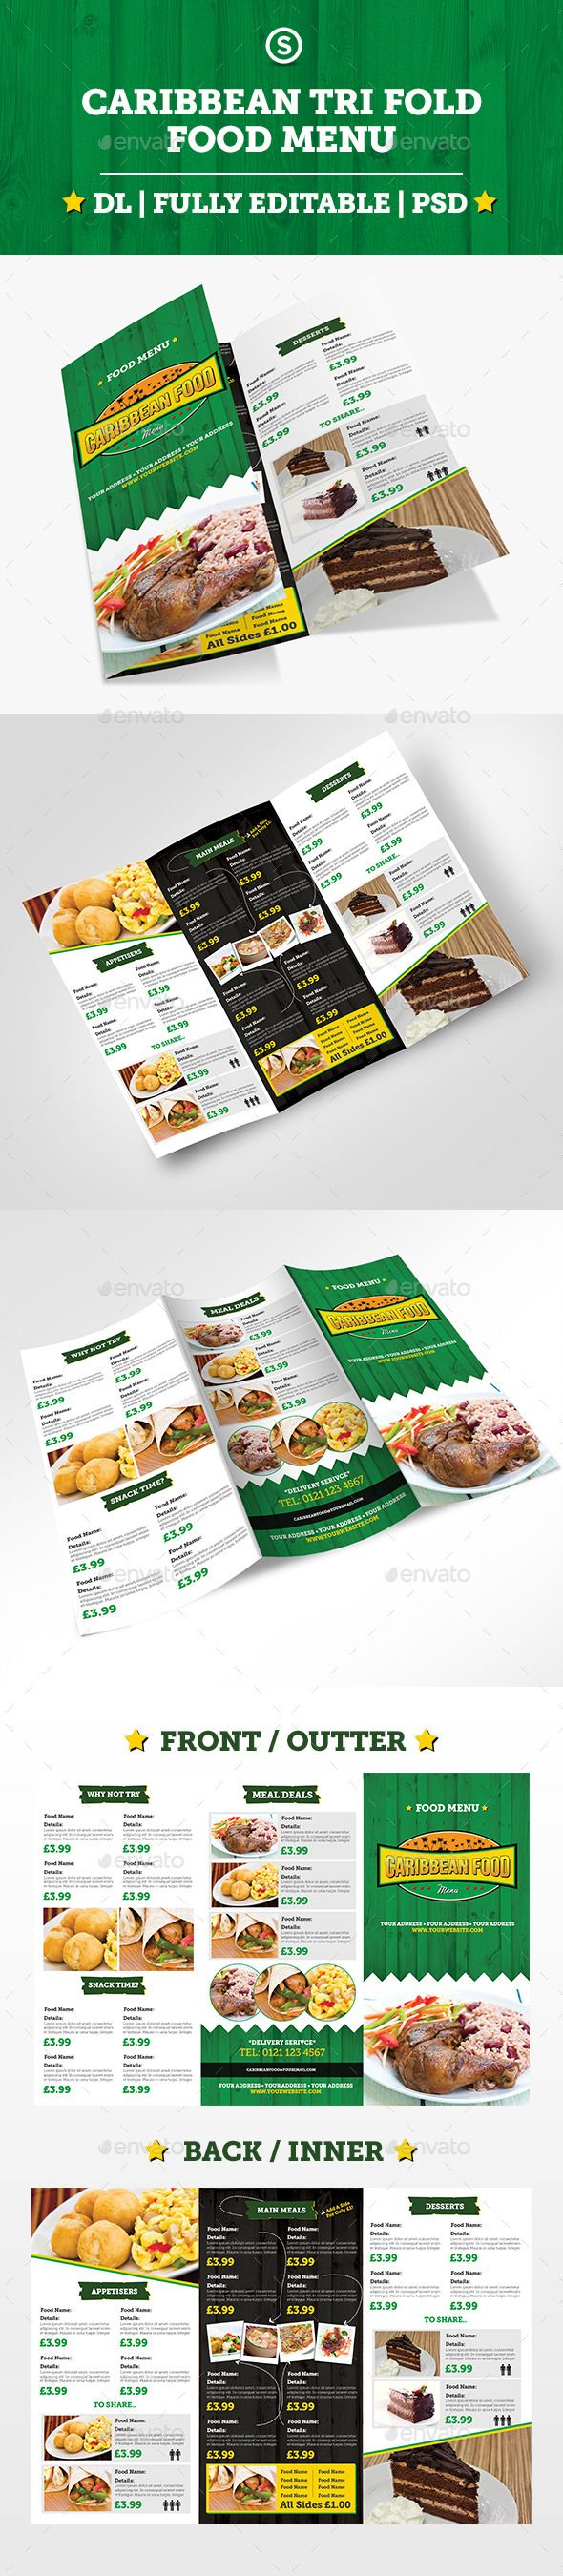 Caribbean Tri Fold Food Menu  Food Menu Search And Restaurant